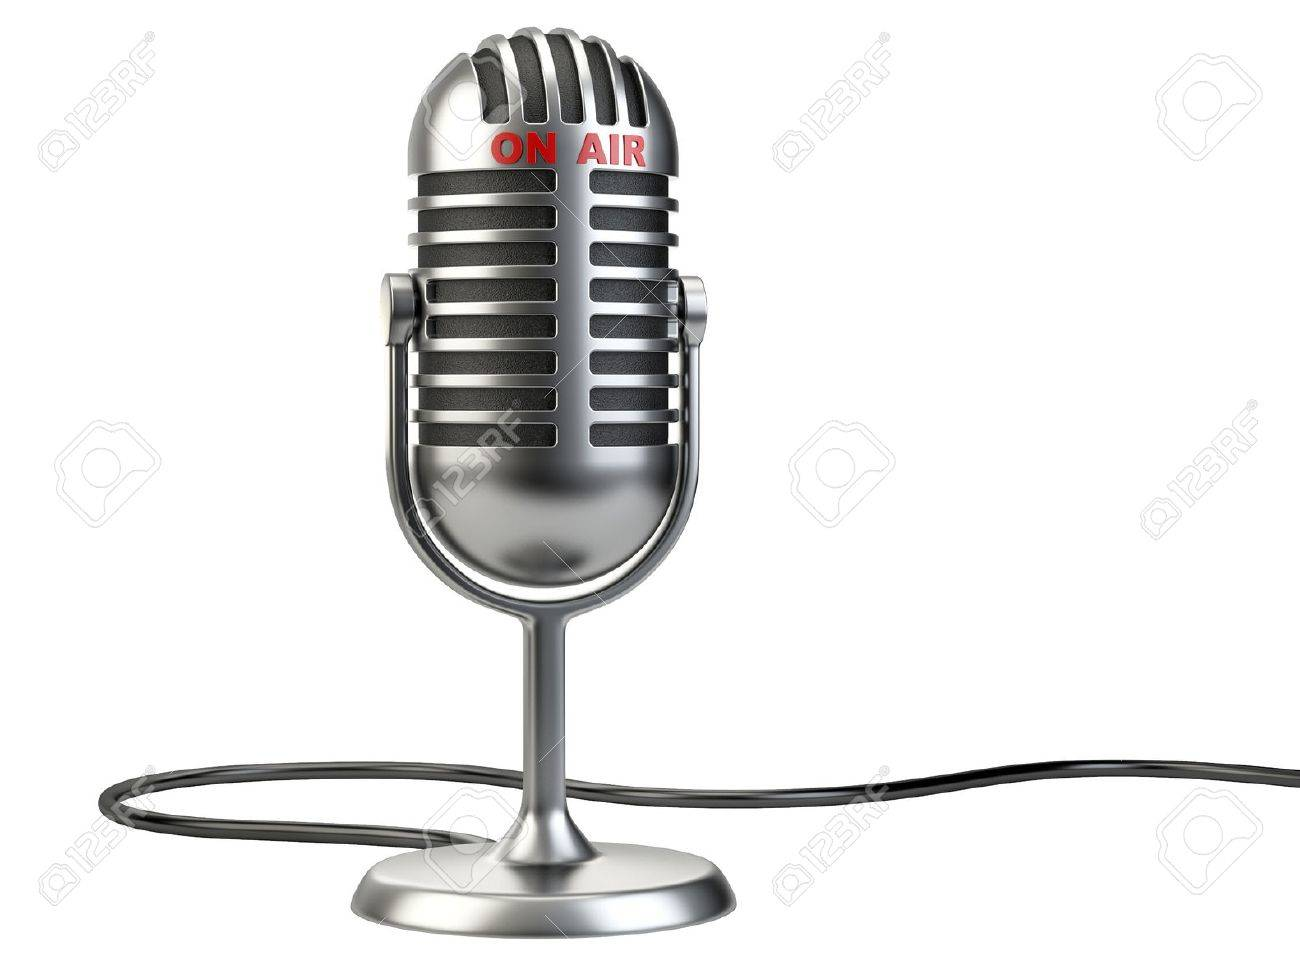 """Retro style microphone with """"on air"""" sign isolated on a white background - 44826592"""